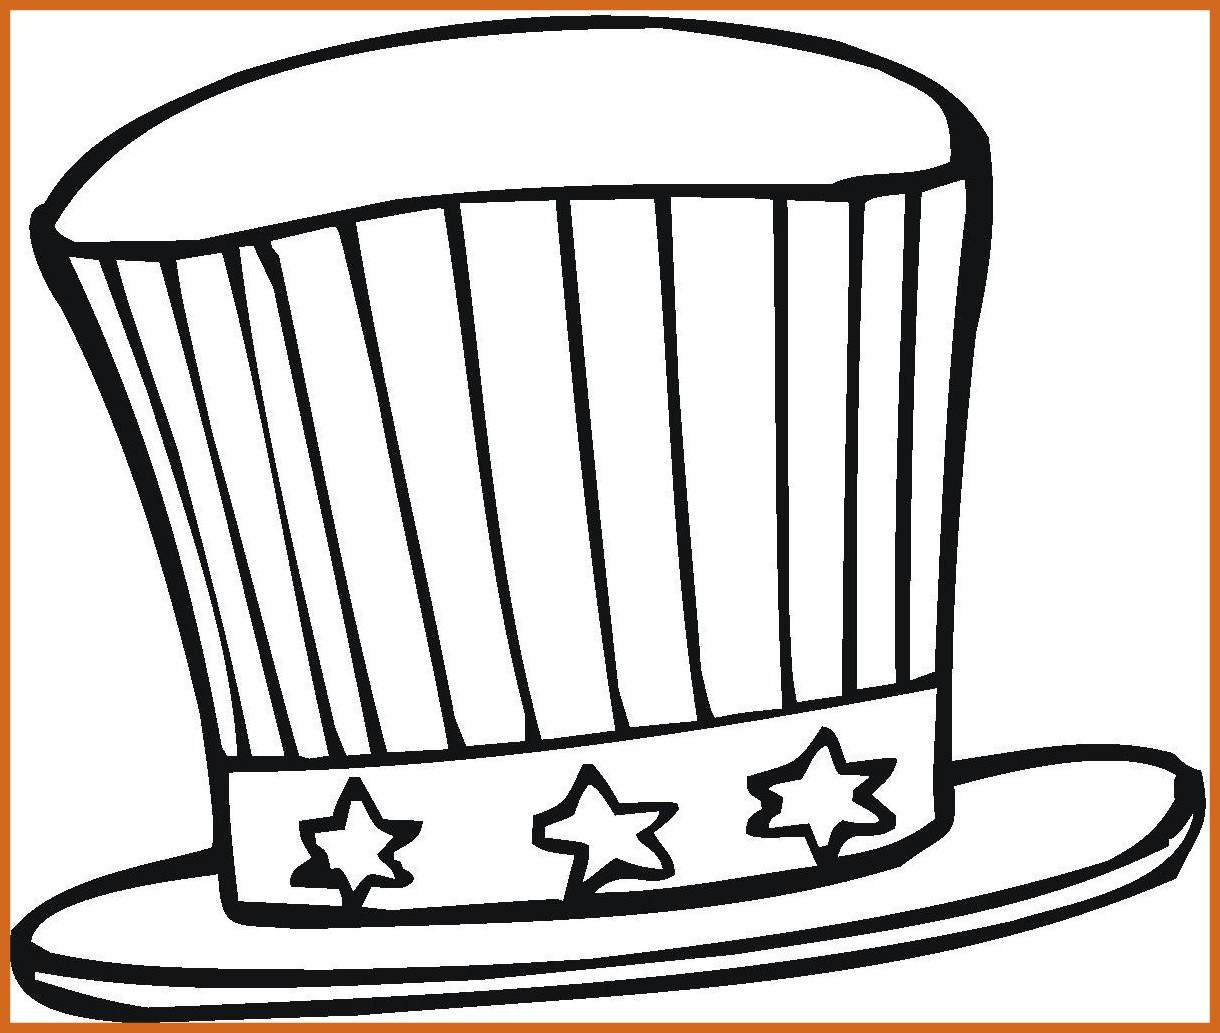 1220x1033 Shocking Tremendous Baseball Cap Coloring Page For Concept